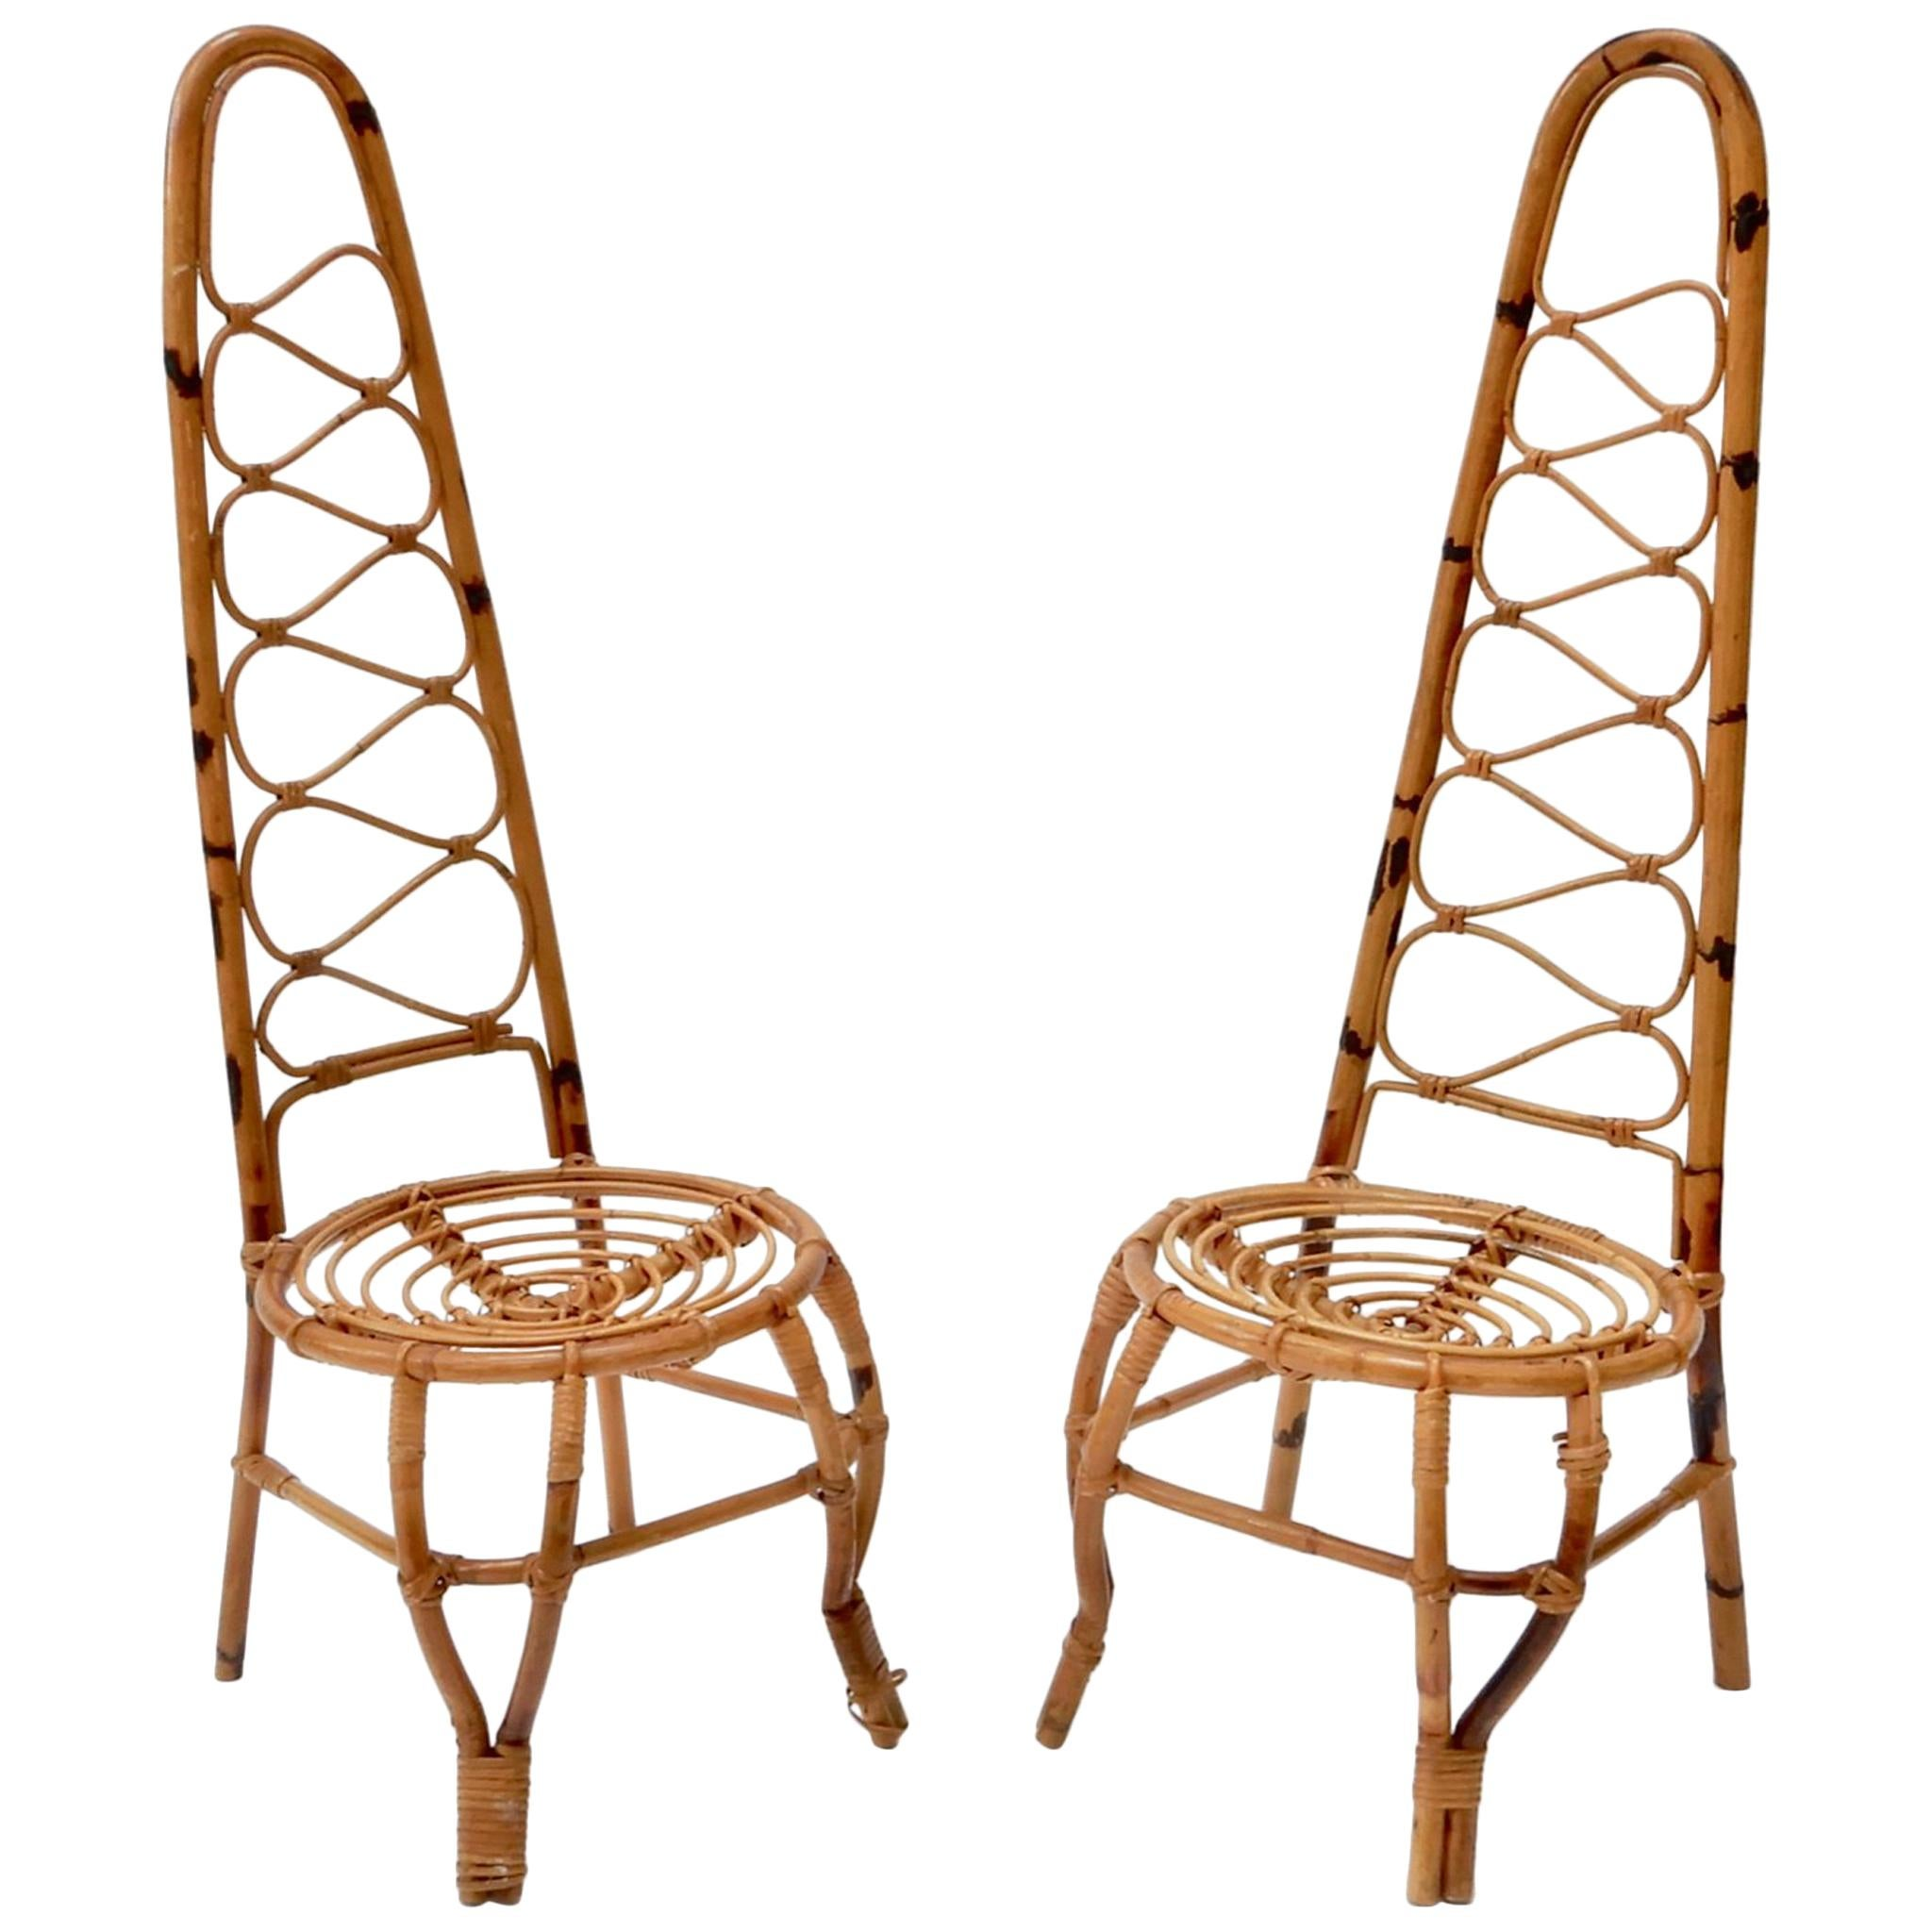 bamboo chairs hammock chair accessories french riviera midcentury set of six at 1stdibs two rattan and on the 1960s